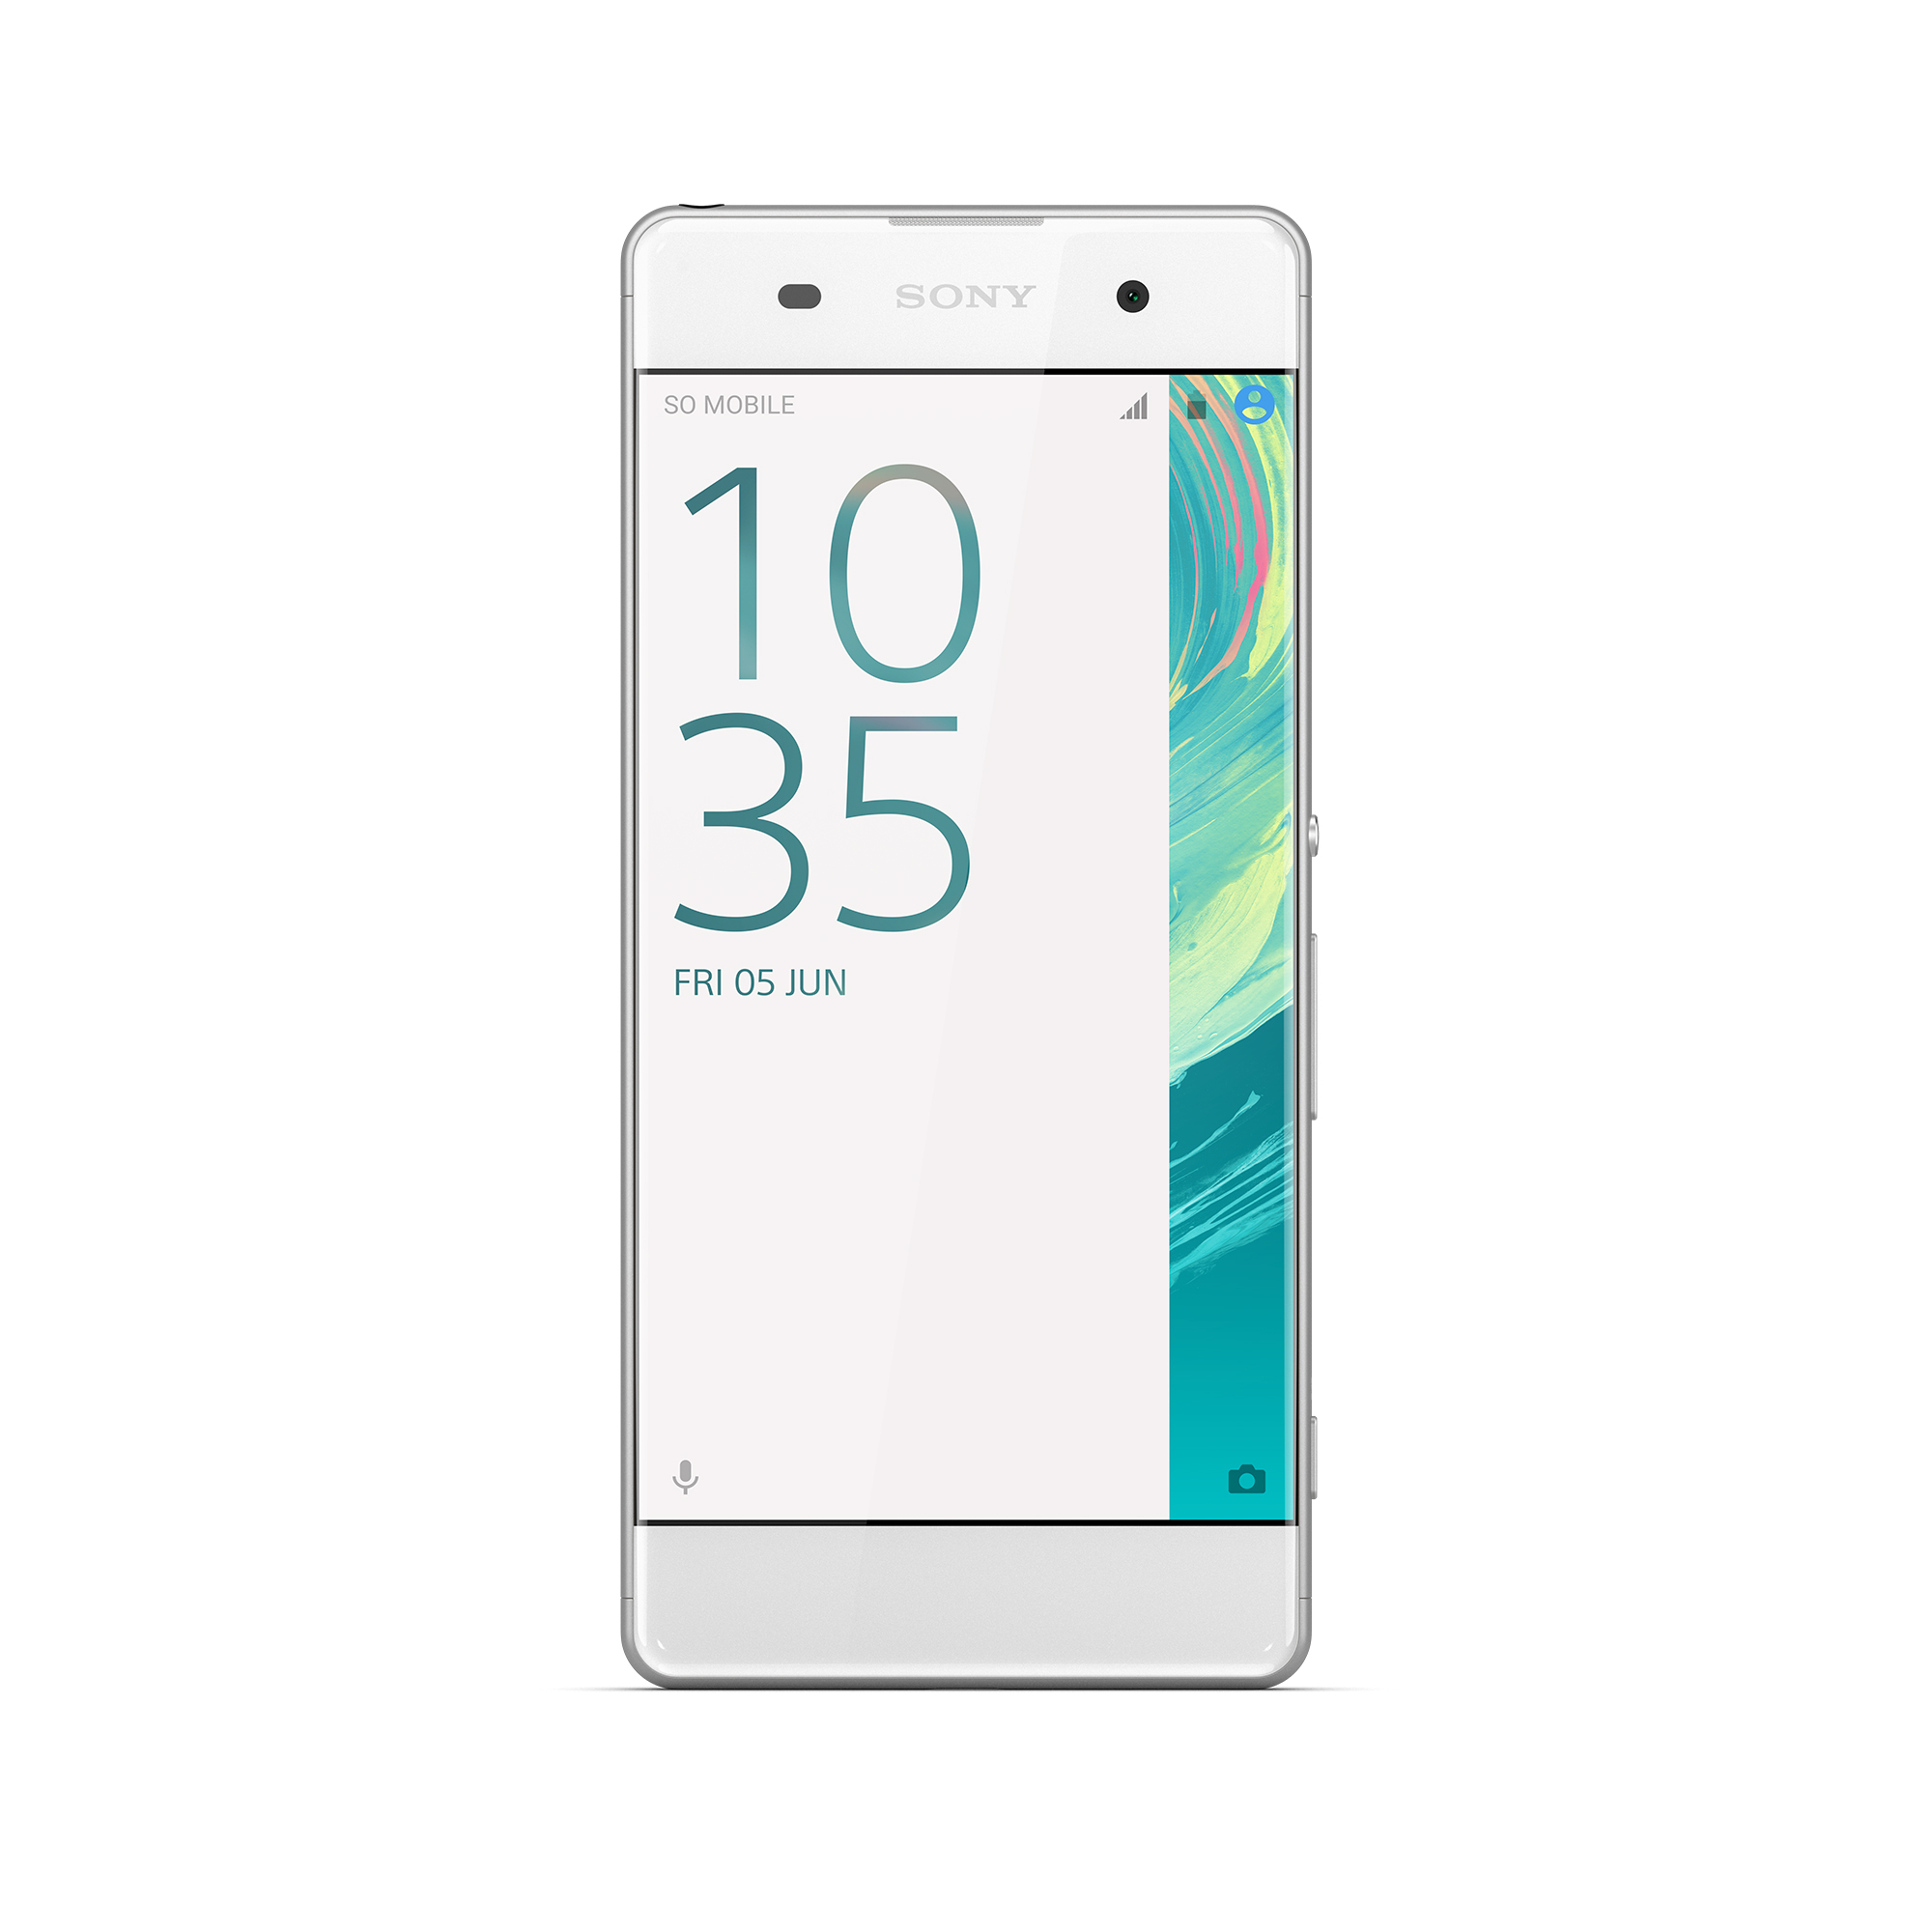 Sony Xperia XA Ultra Unveiled and Ready for Purchase.